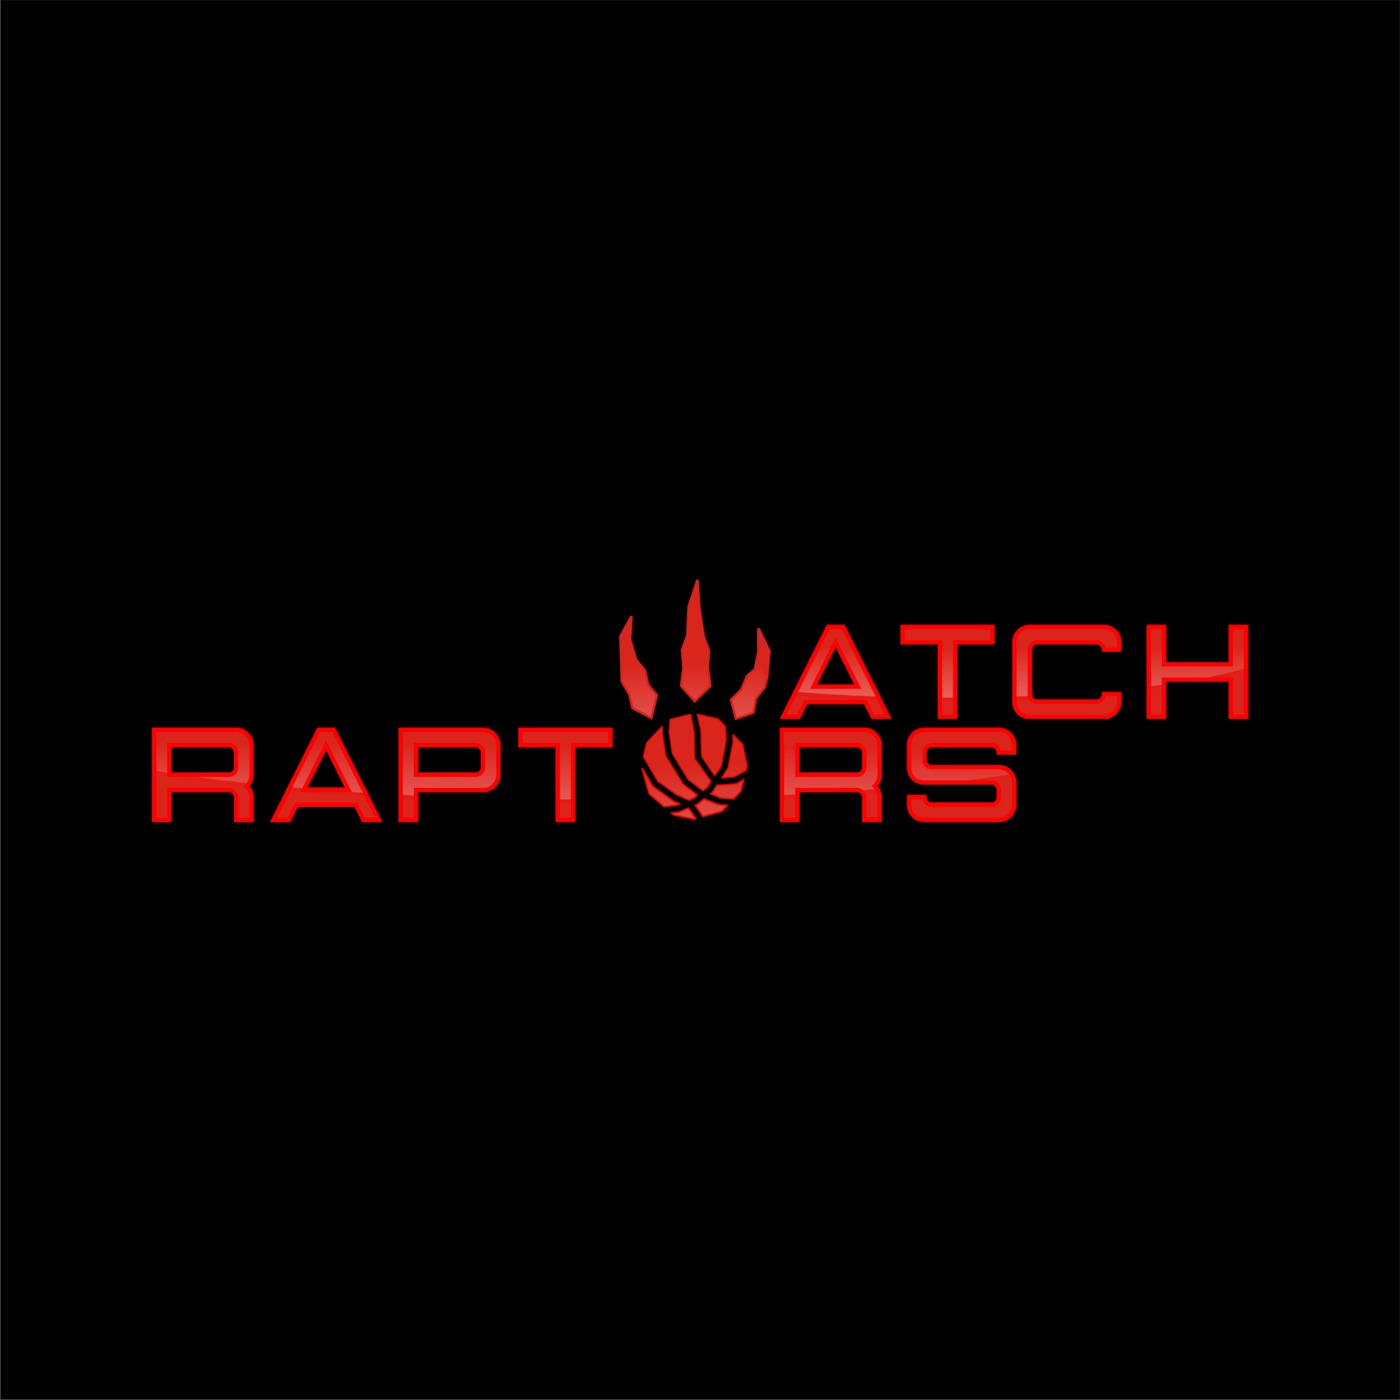 Raptors Watch Podcast